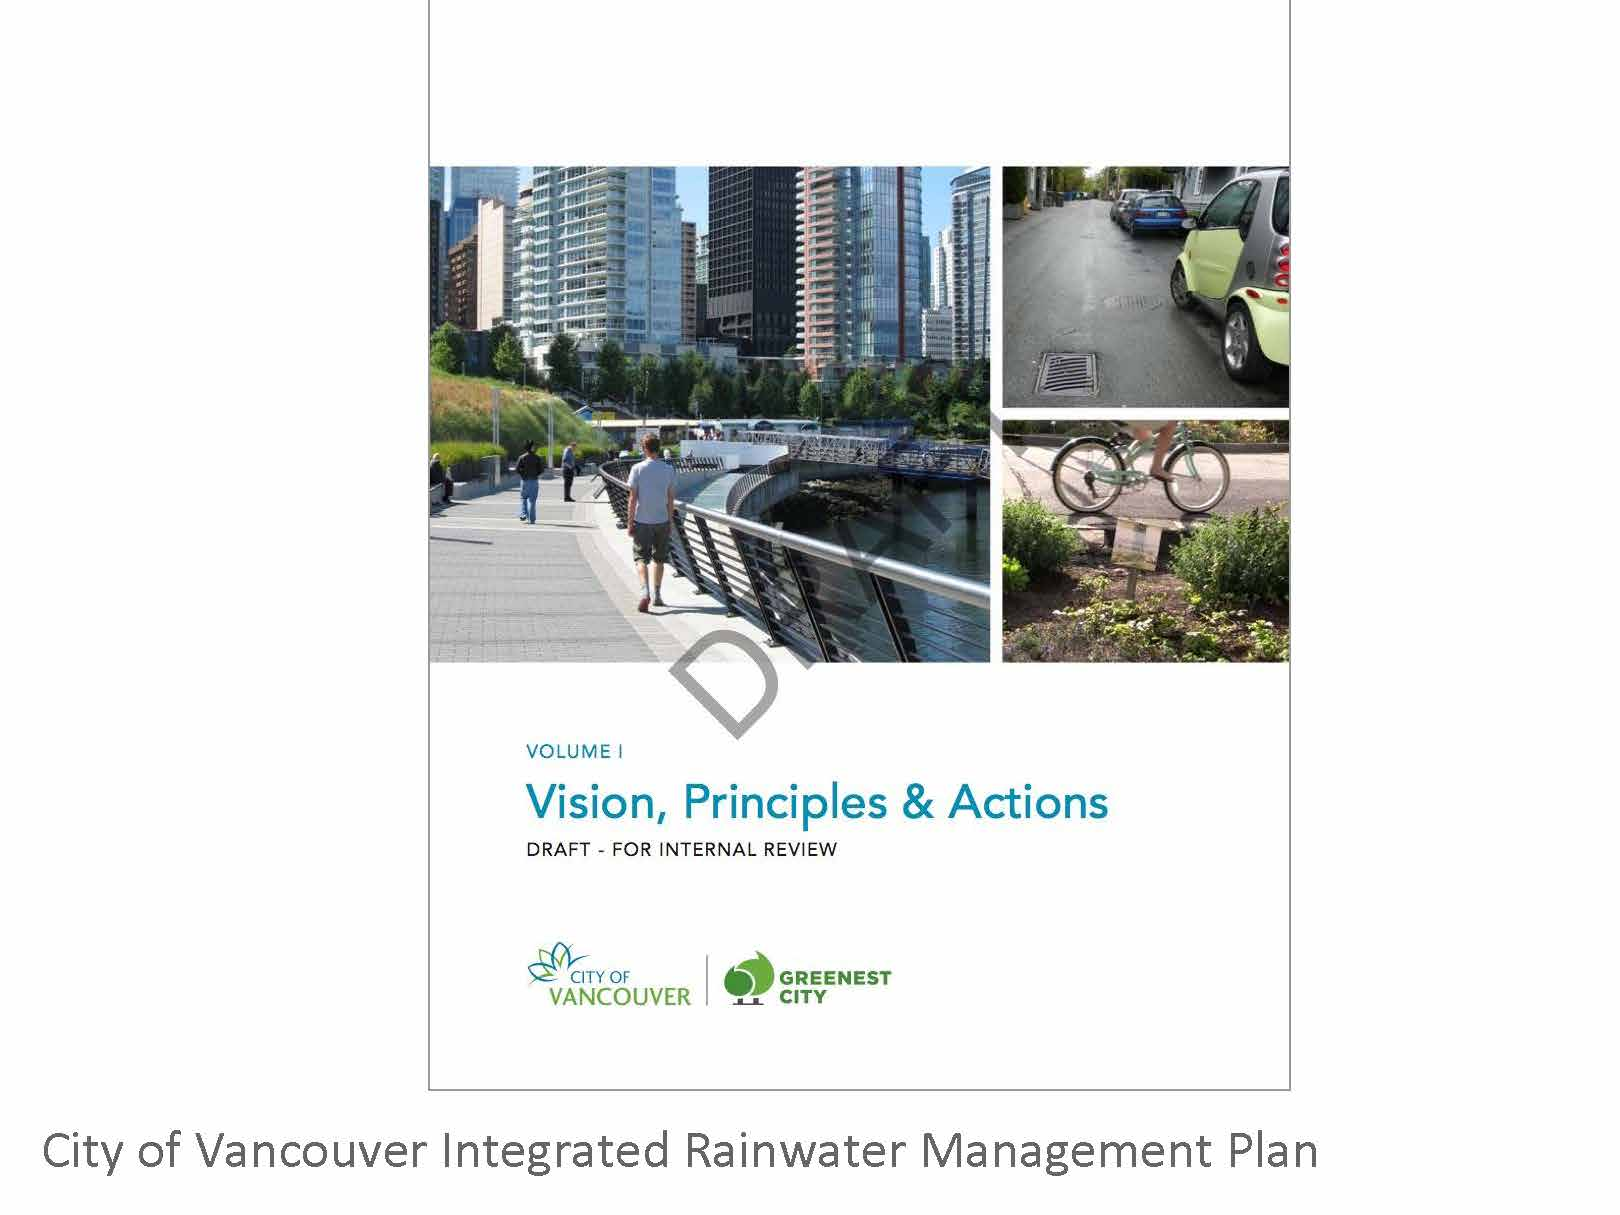 More recently we've participated as stakeholders in the development of the City's Integrated Rainwater Management Plan.